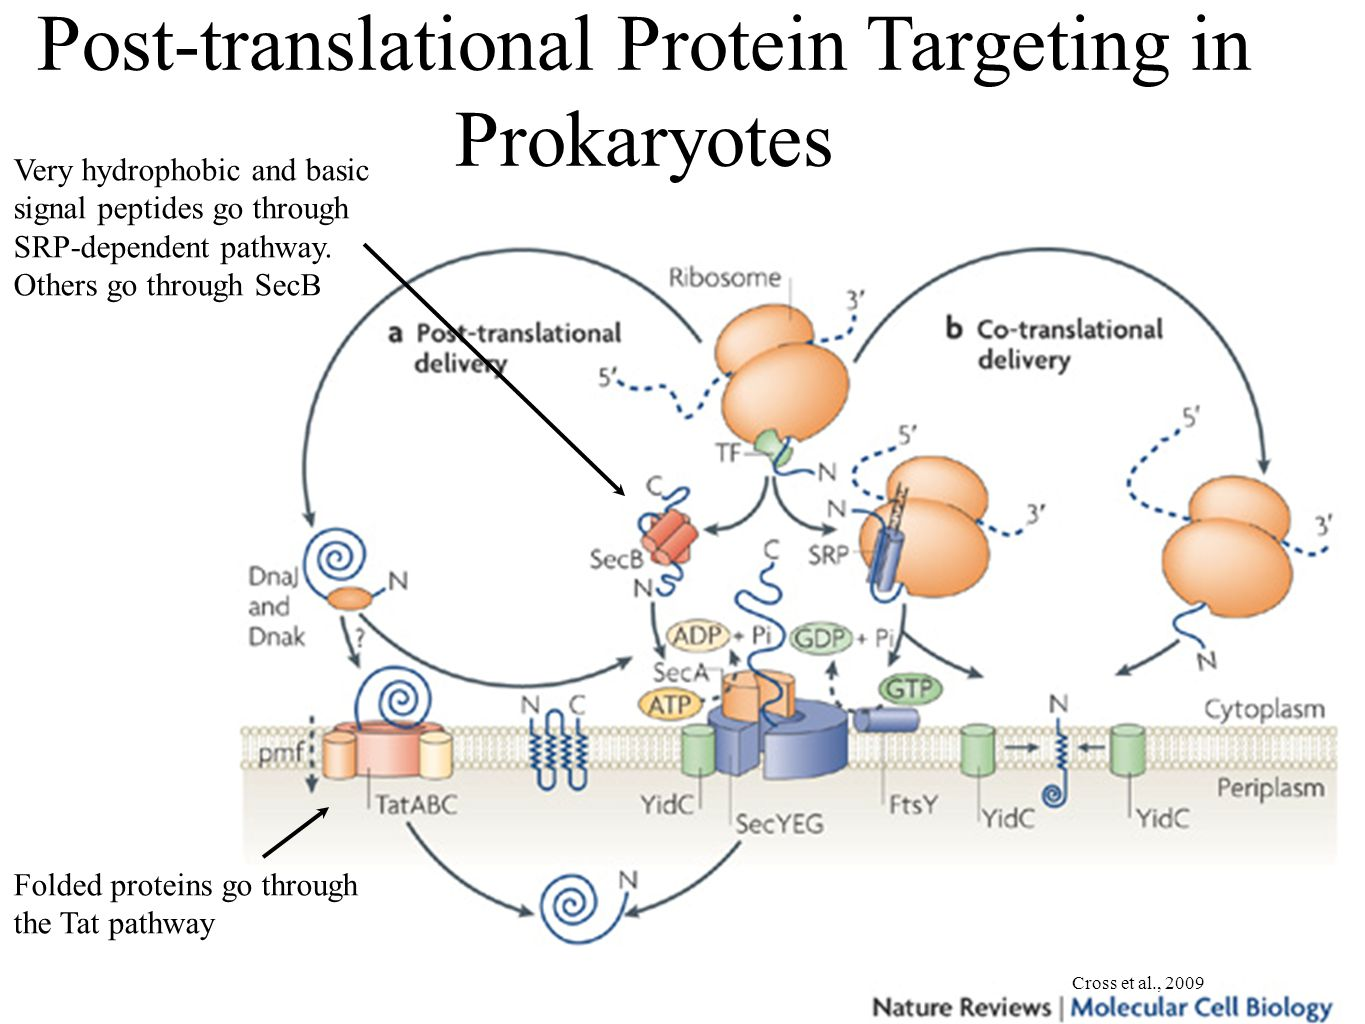 Post-translational Protein Targeting in Prokaryotes Cross et al., 2009 Very hydrophobic and basic signal peptides go through SRP-dependent pathway. Ot